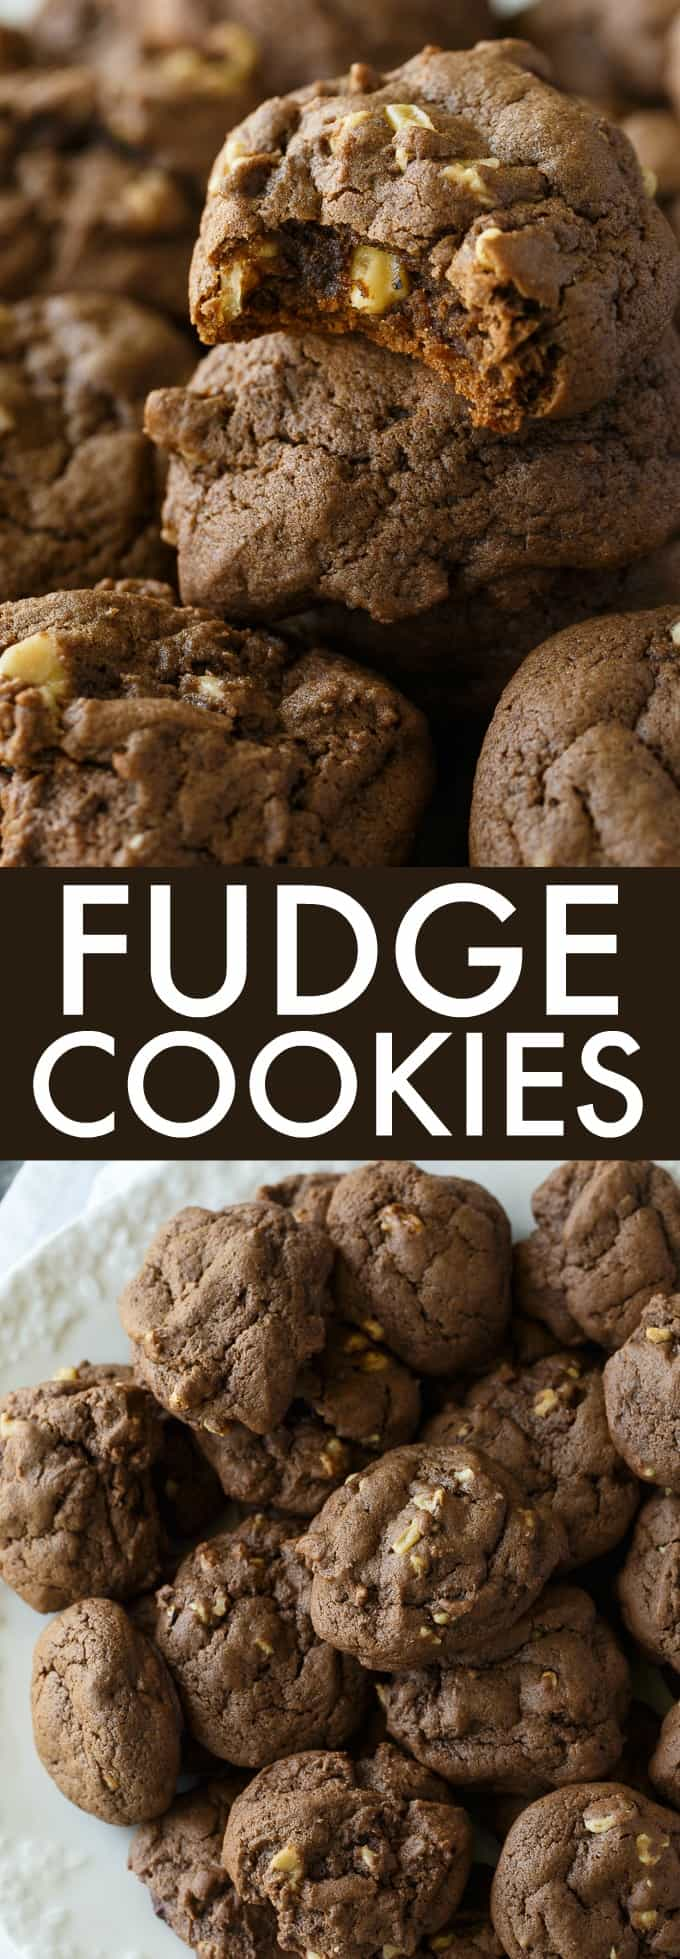 Fudge Cookies - Rich, chocolatey and chewy! This simple cookie recipe is great for cookie exchanges and holiday parties.